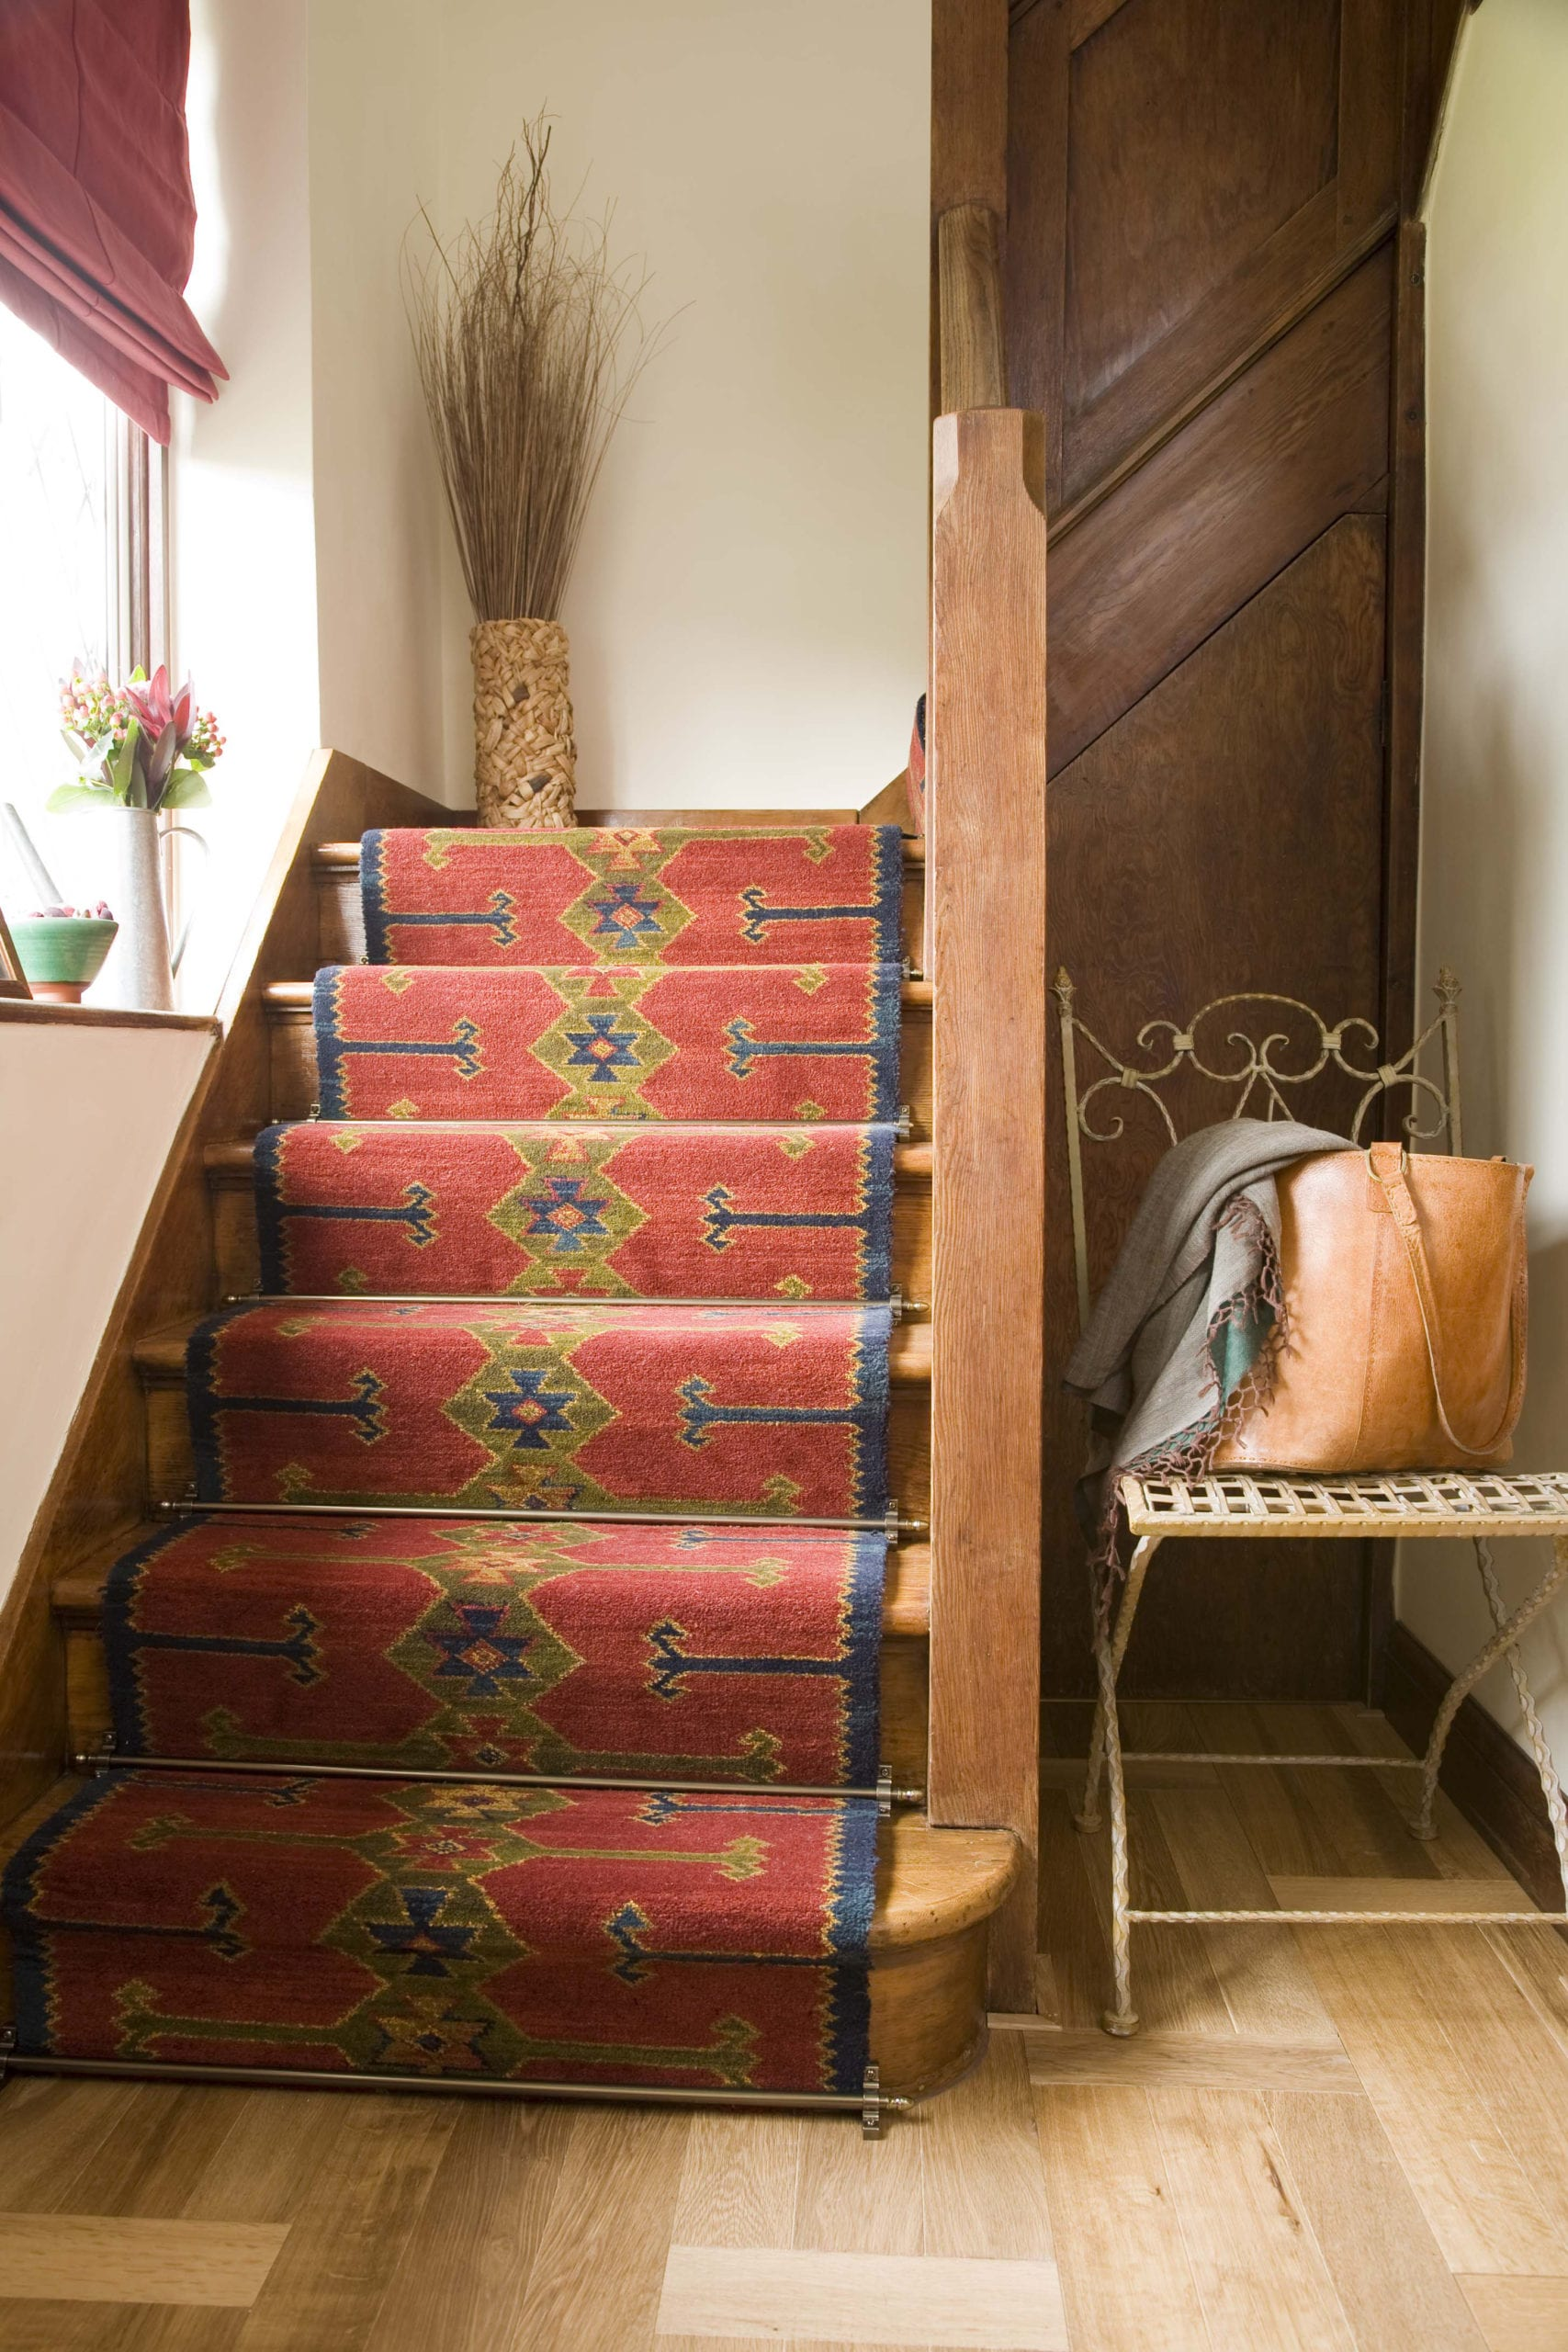 Homepride-cheap-stair-bars